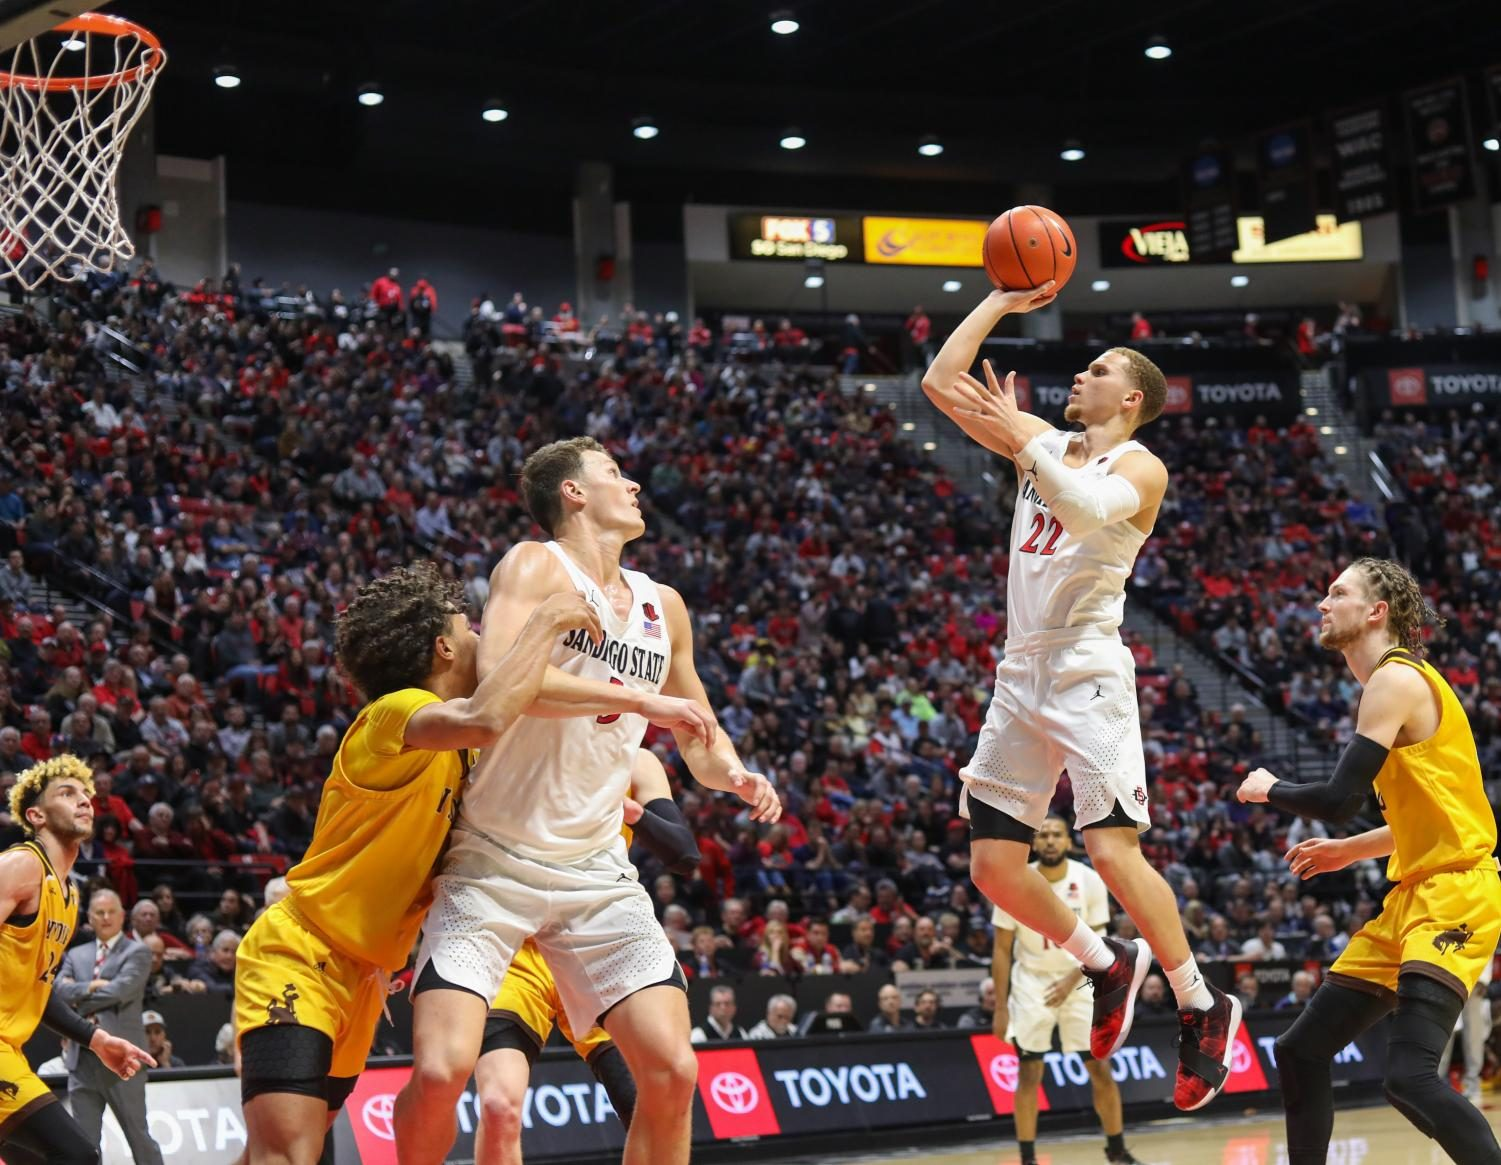 Junior guard Malachi Flynn goes for a floater in the lane during the Aztecs' 72-55 win over Wyoming on Jan. 21 at Viejas Arena.